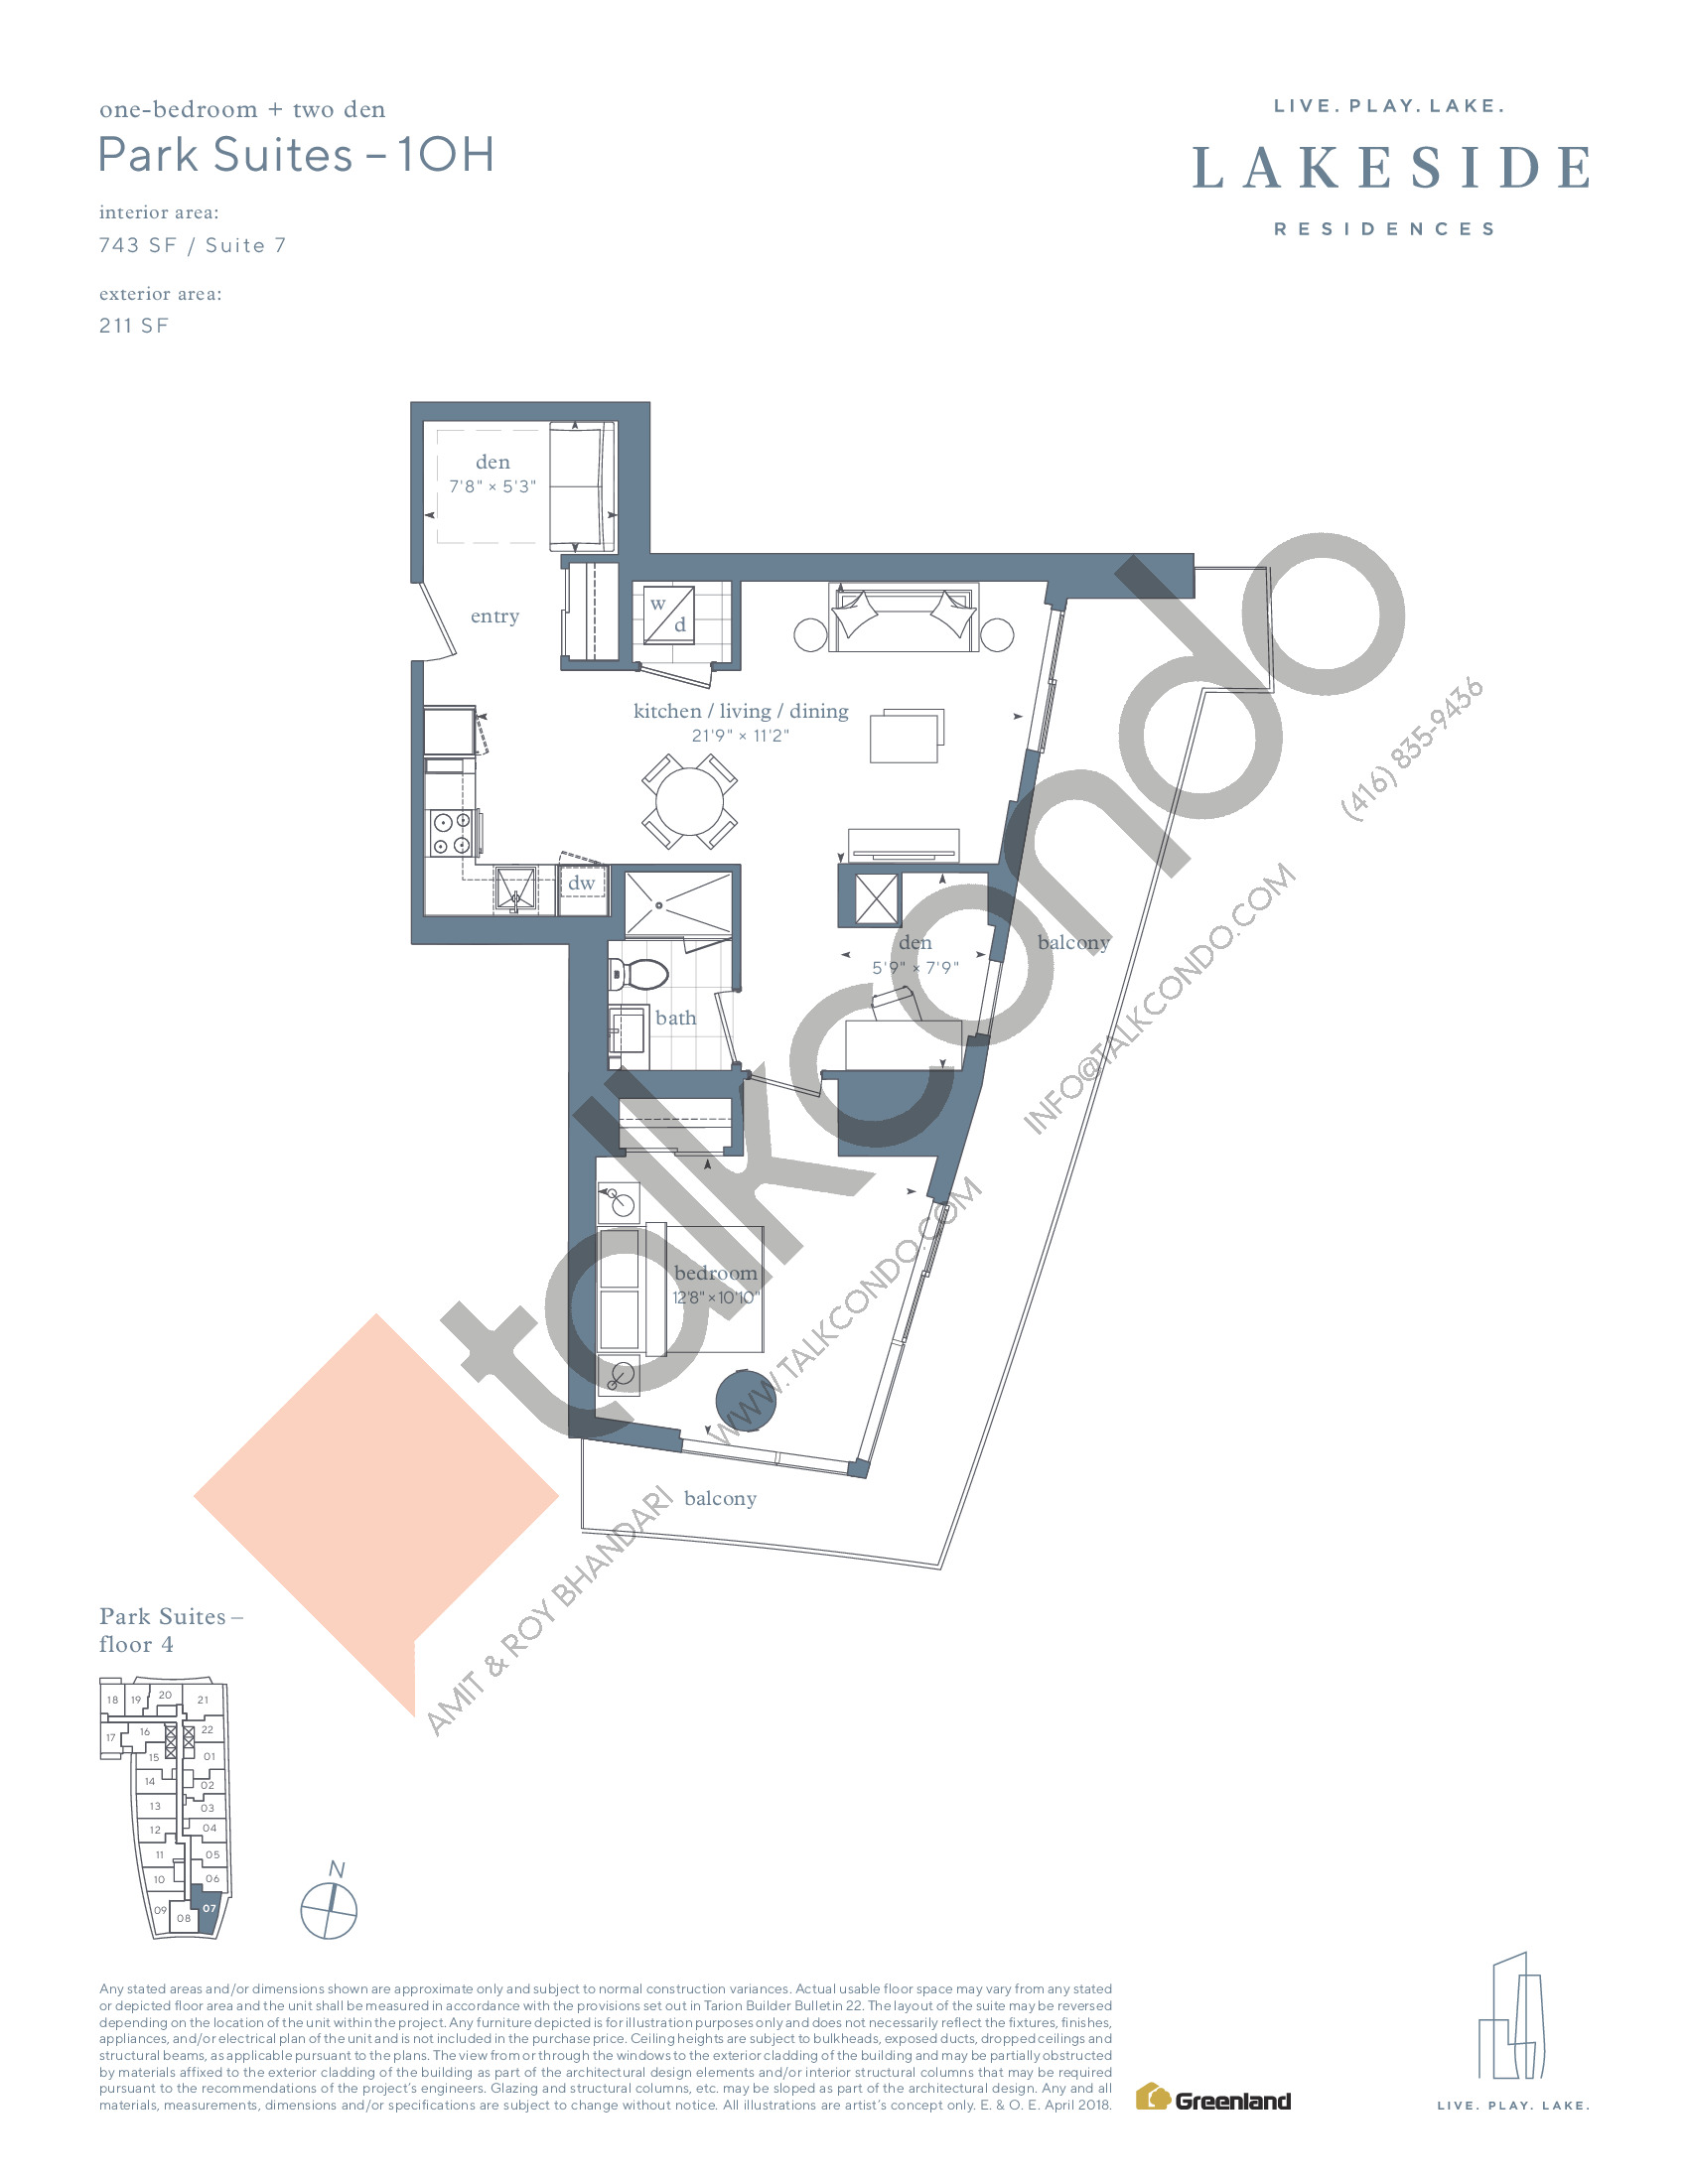 Park Suites - 1OH Floor Plan at Lakeside Residences - 743 sq.ft